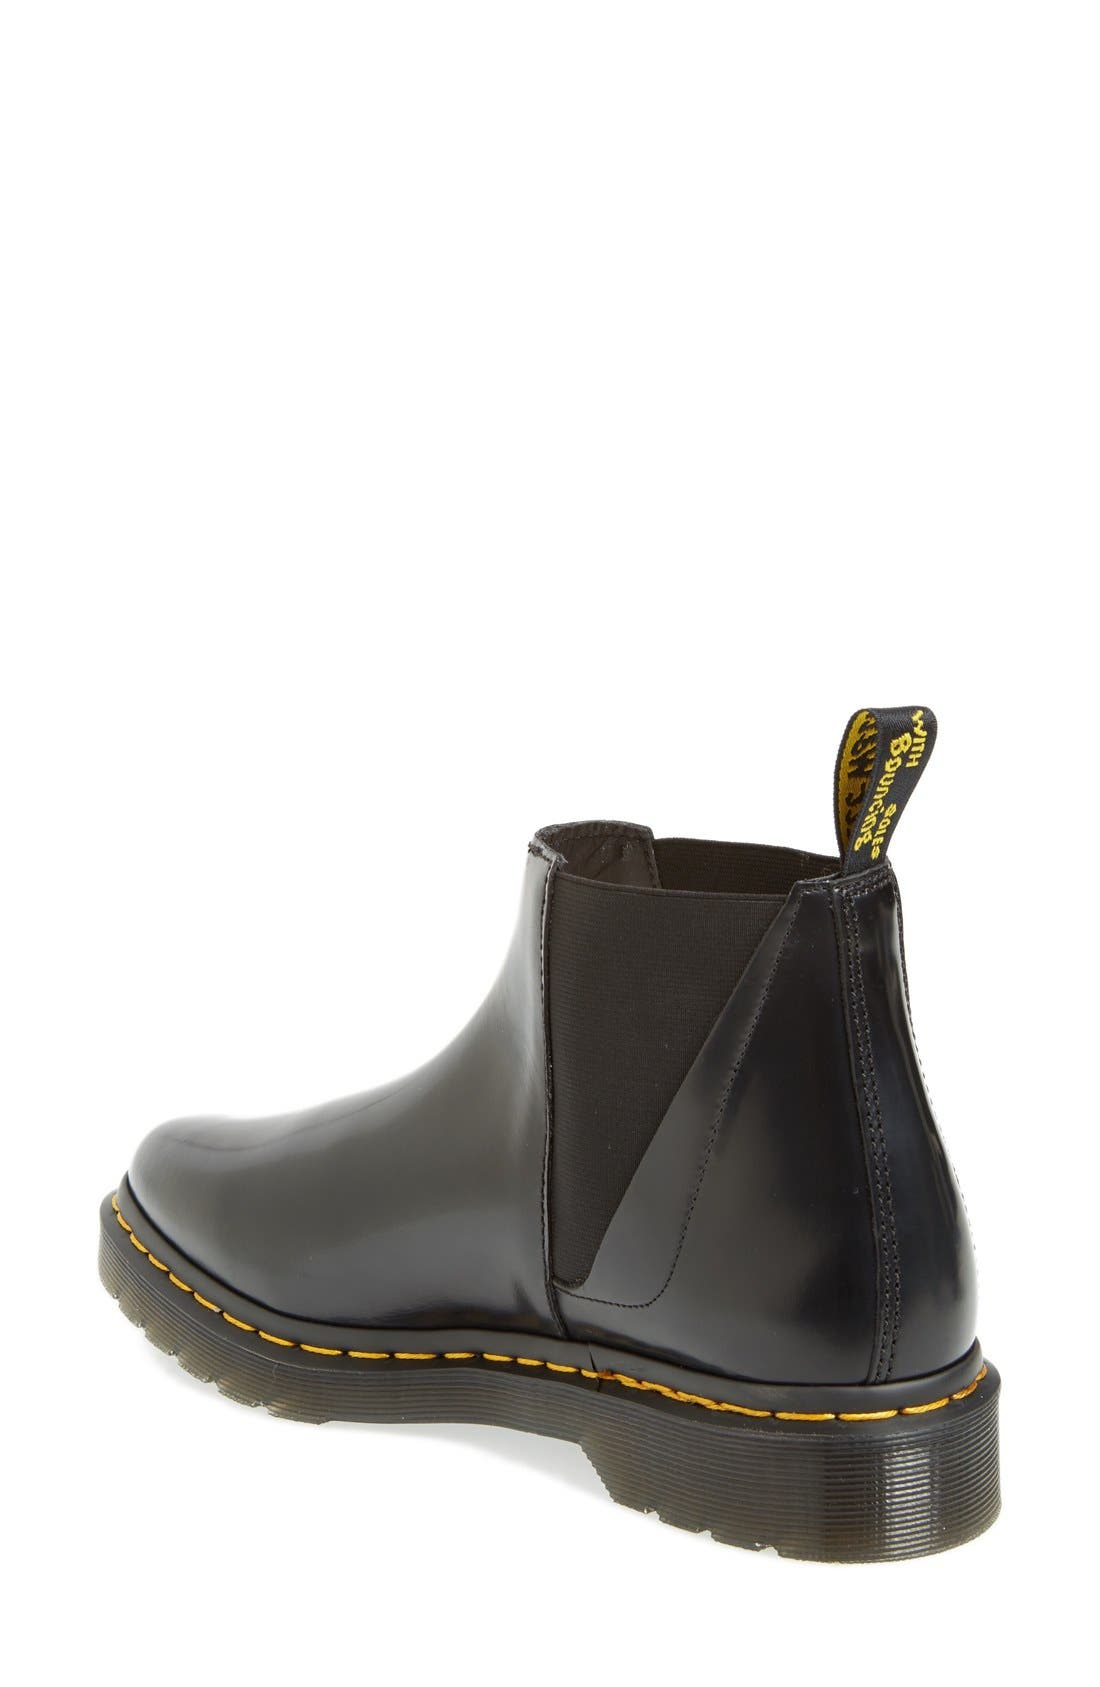 Alternate Image 2  - Dr. Martens 'Bianca' Chelsea Boot (Women)